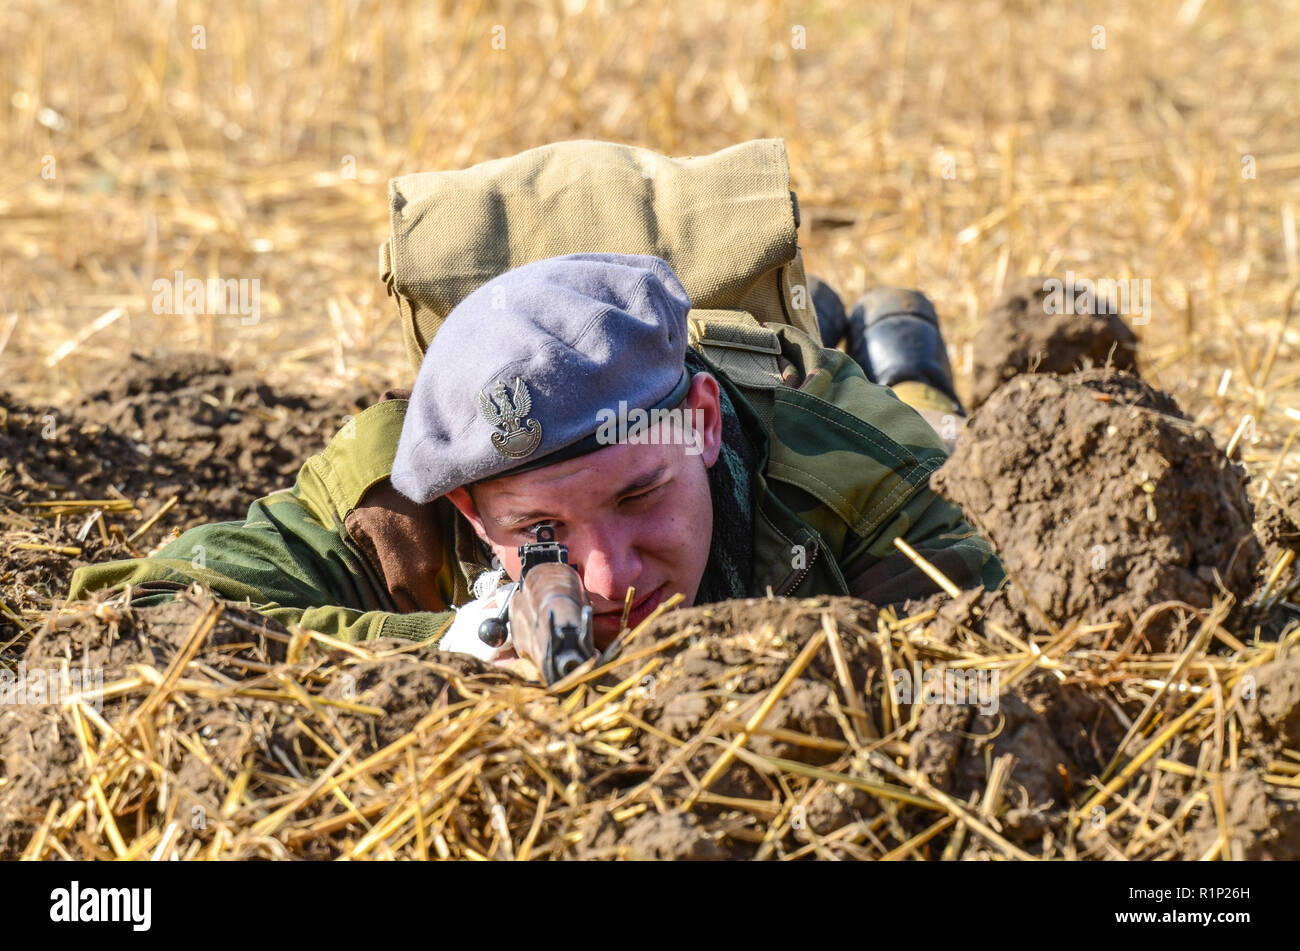 Second World War soldier re-enactment. Young British Army soldier laying prone with rifle. Looking through gunsight, gun sight. Weapon. Aiming - Stock Image